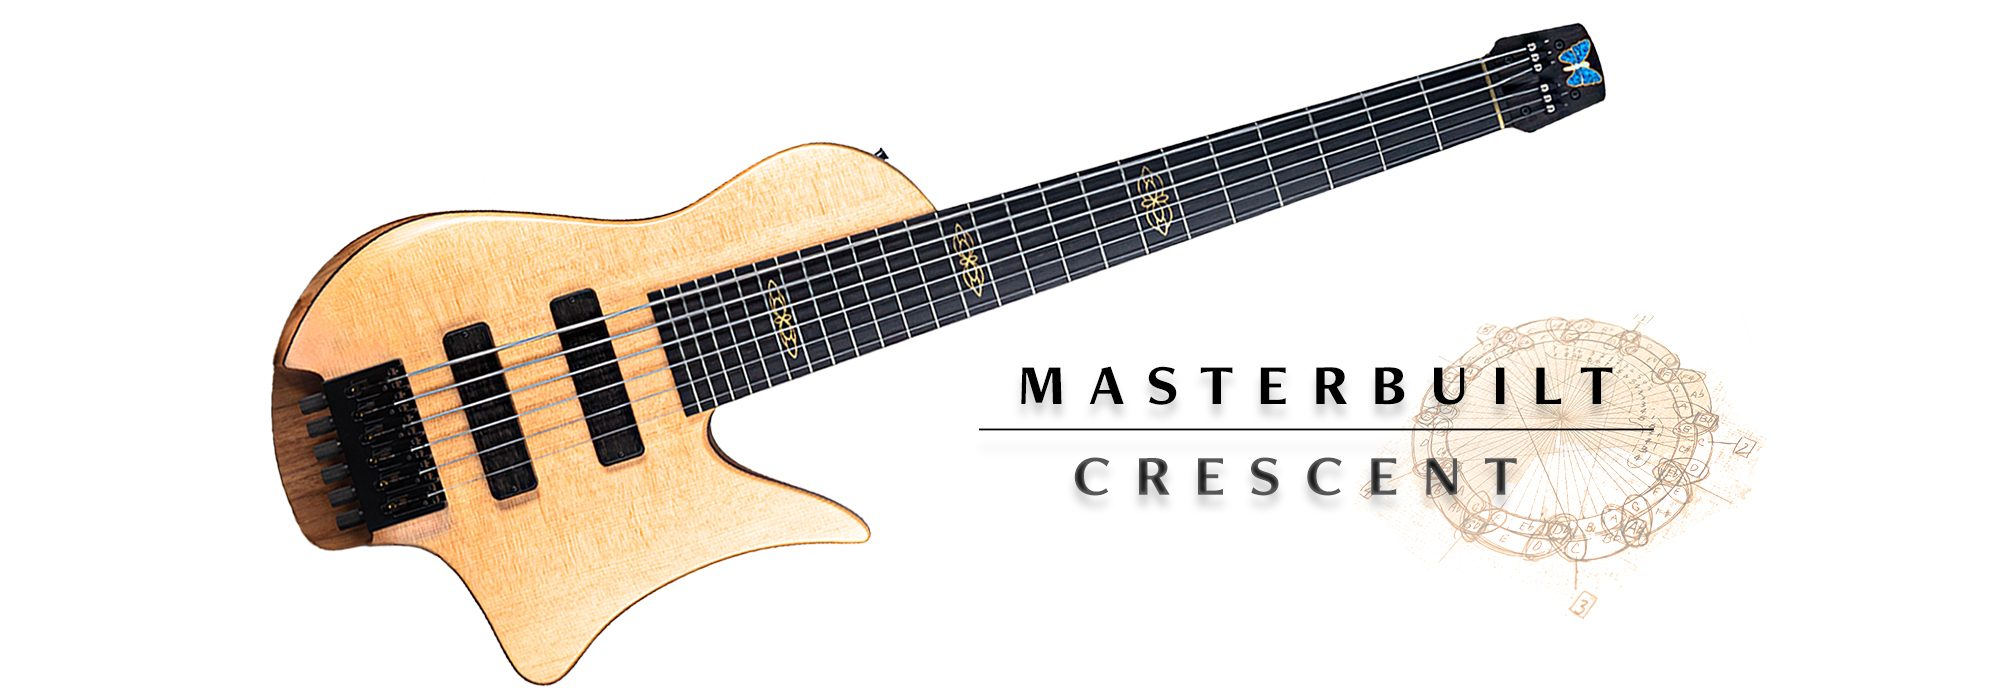 Masterbuilt Crescent Bass Guitar